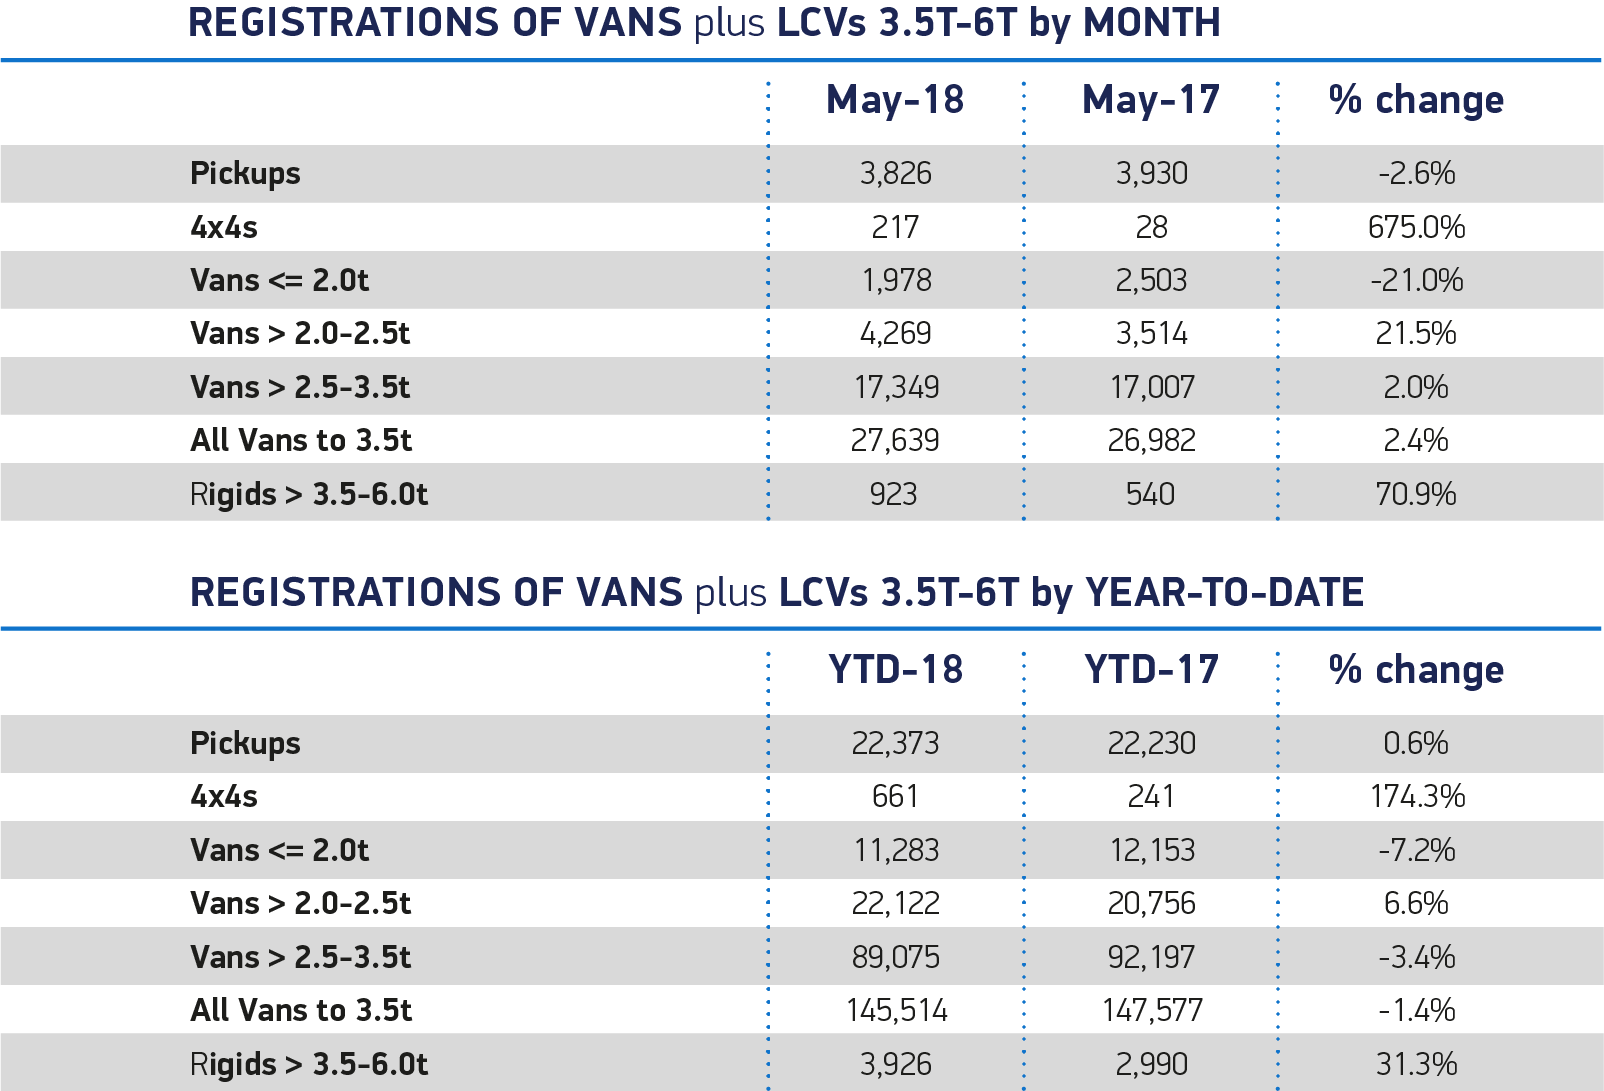 van registrations may